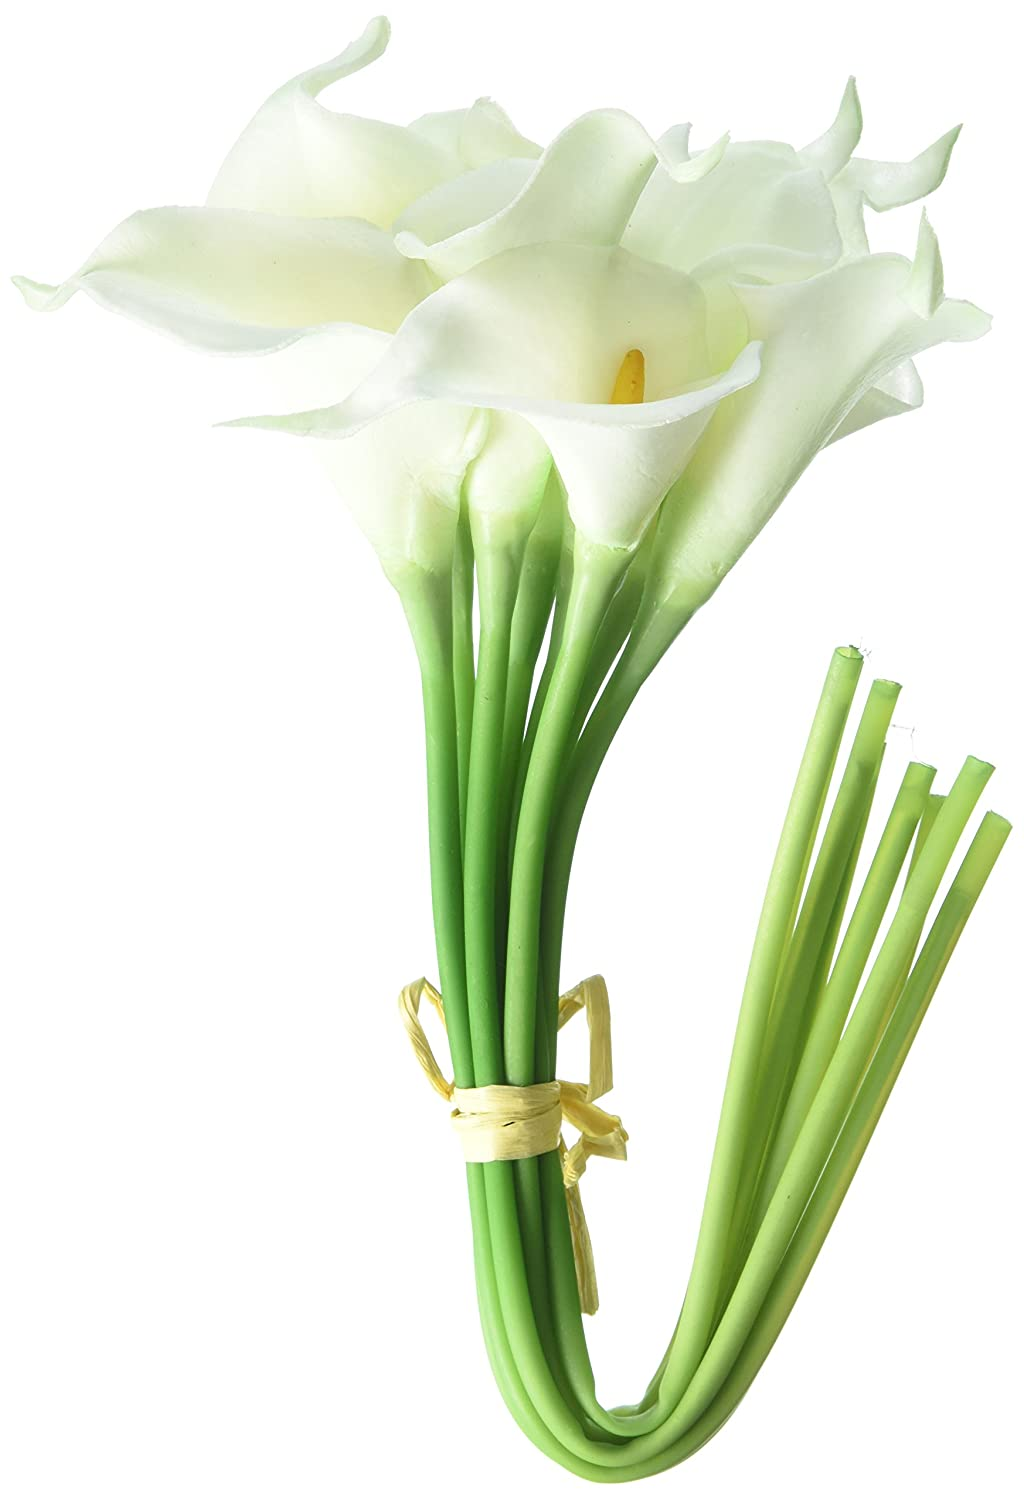 Amazon calla lily bridal wedding bouquet 20 head latex real amazon calla lily bridal wedding bouquet 20 head latex real touch flower bouquets kc51 white home kitchen izmirmasajfo